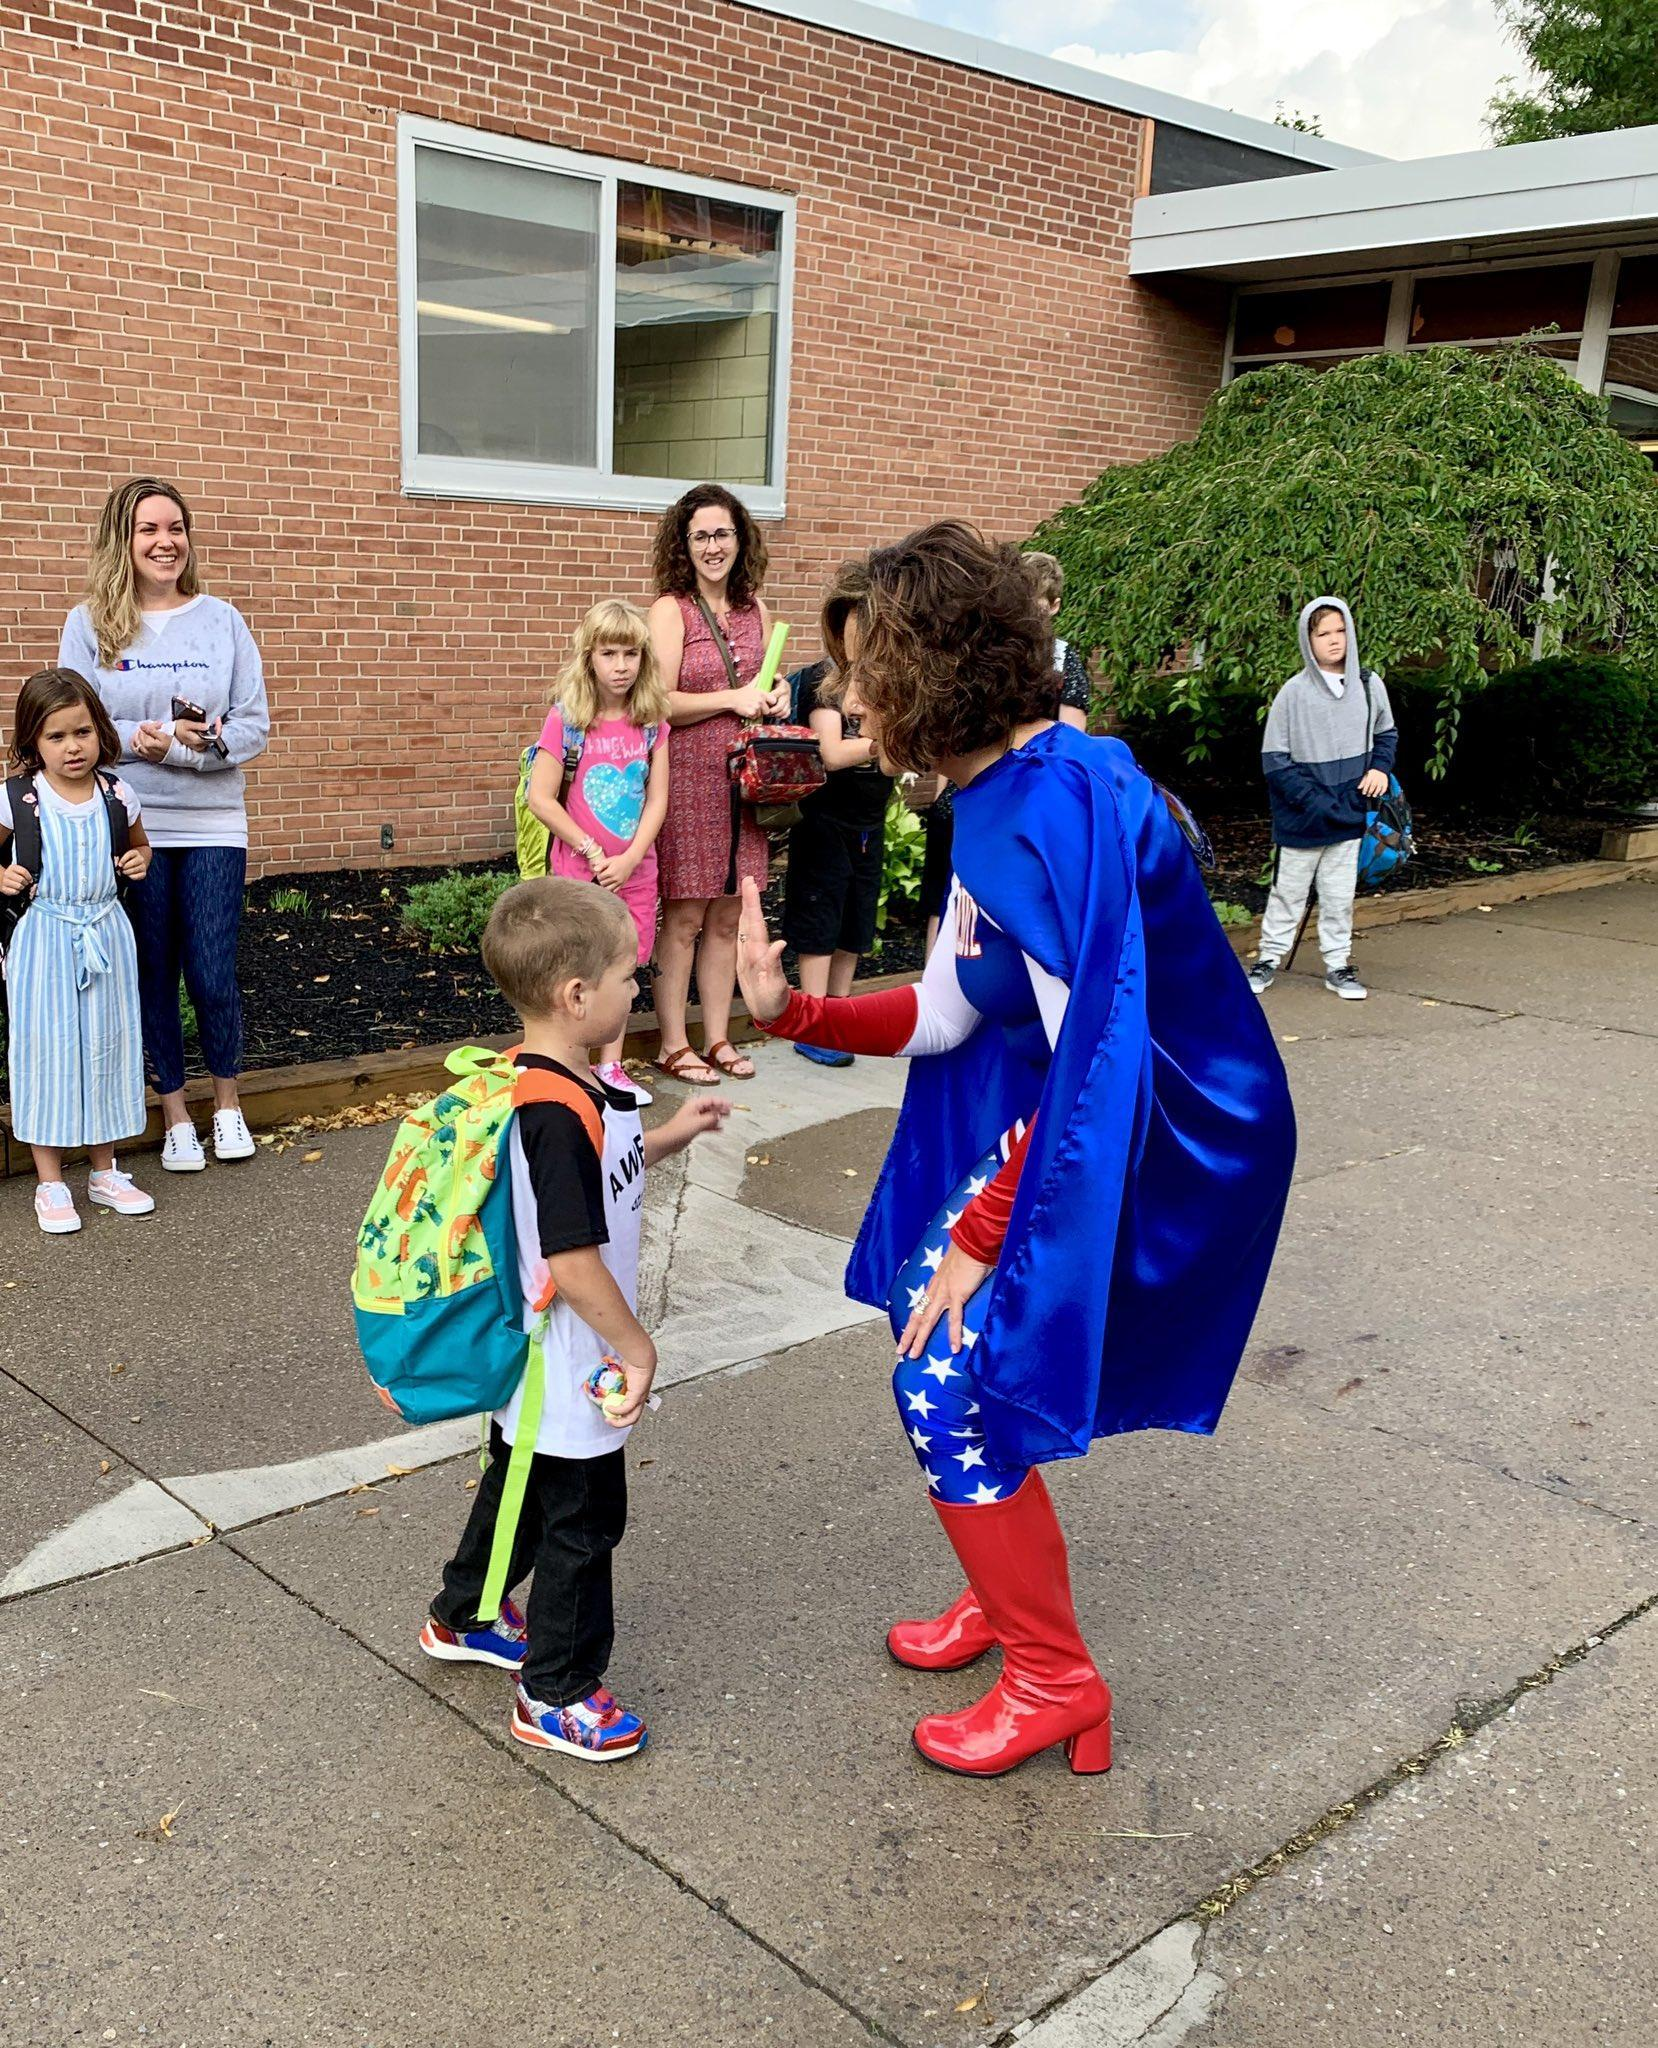 Mrs. Wright, the elementary principal, dressed in a superhero costume, gives a high five to a kindergarten student outside of the school building as he comes to school for the first time.  Other parents and students are smiling and watching.